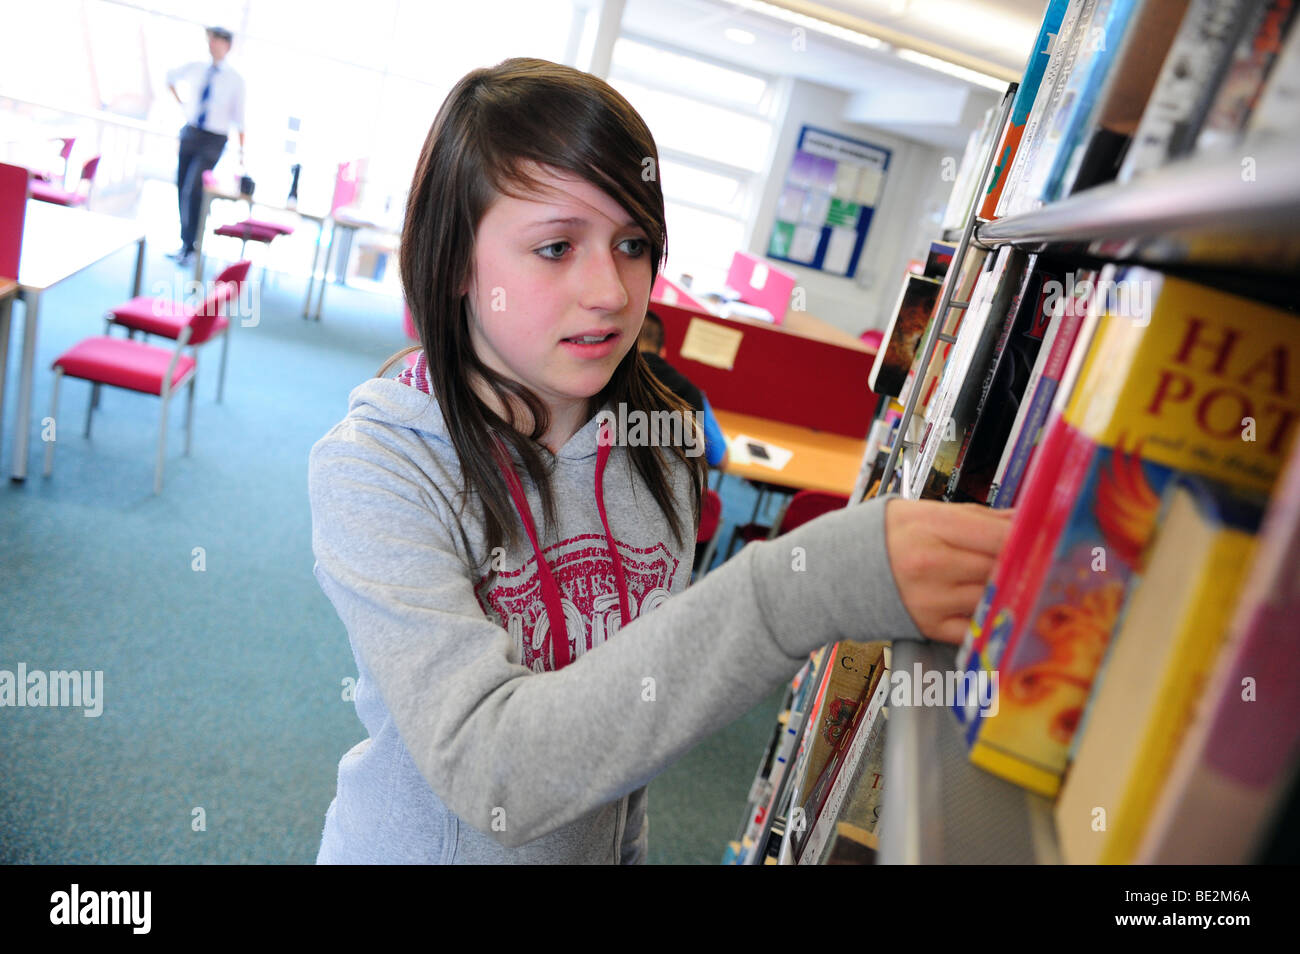 Student at sixth form further education college - Stock Image